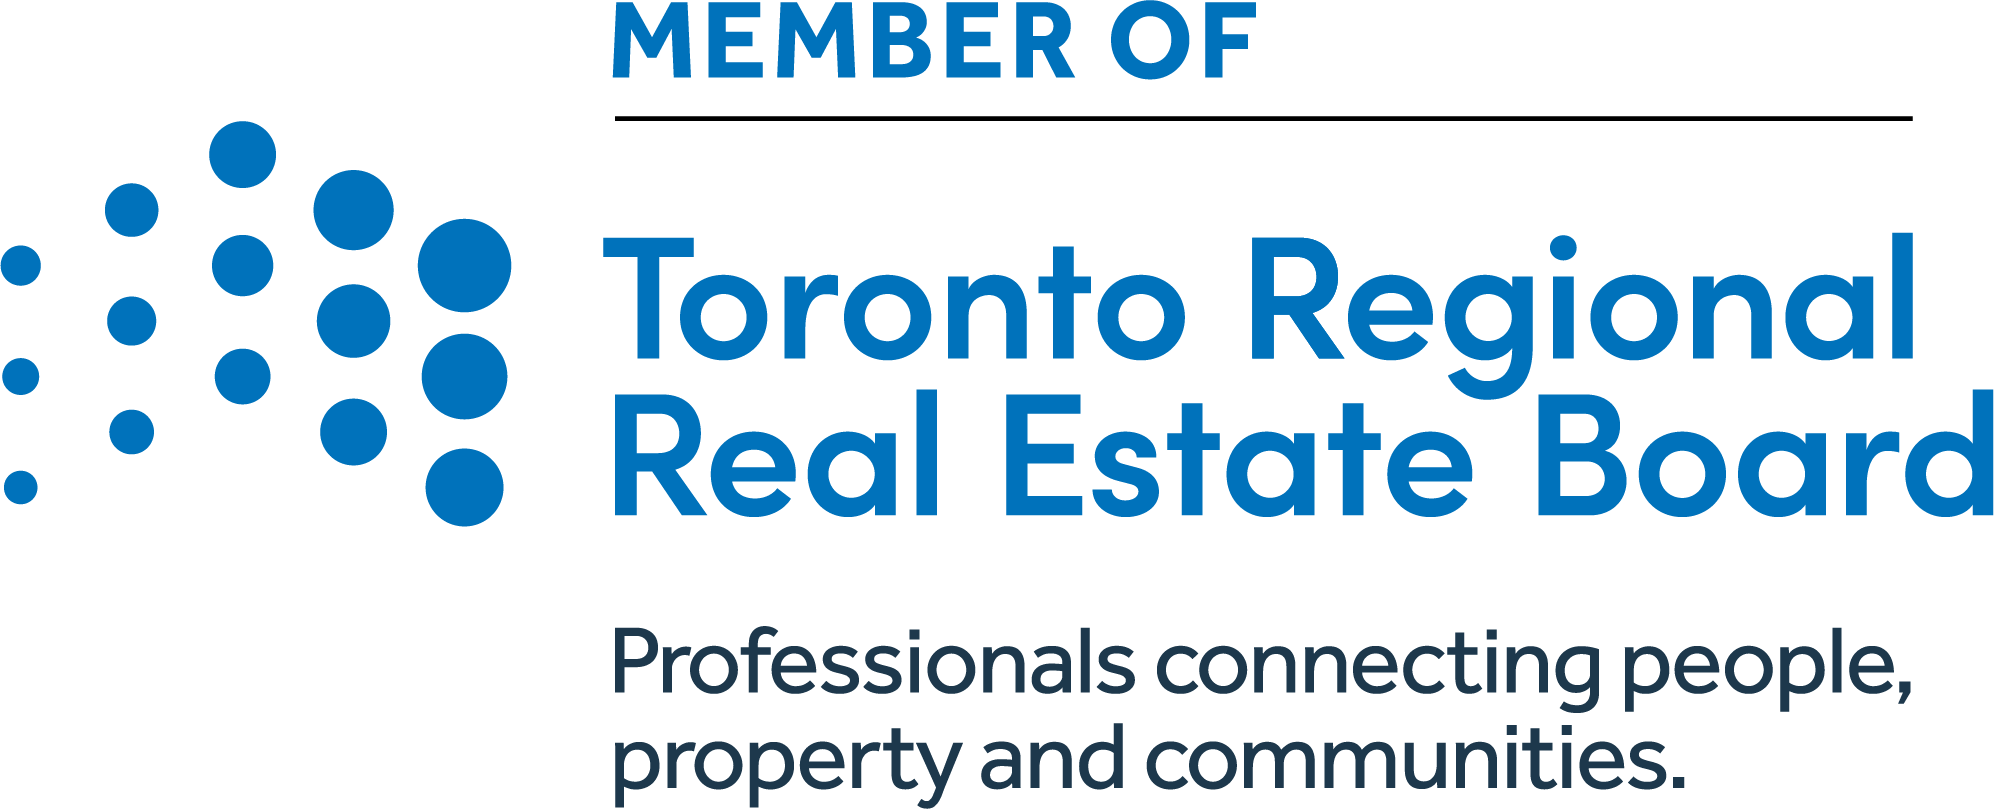 Member of Toronto Regional Real Estate Board: Professionals connecting people, properties and communities.